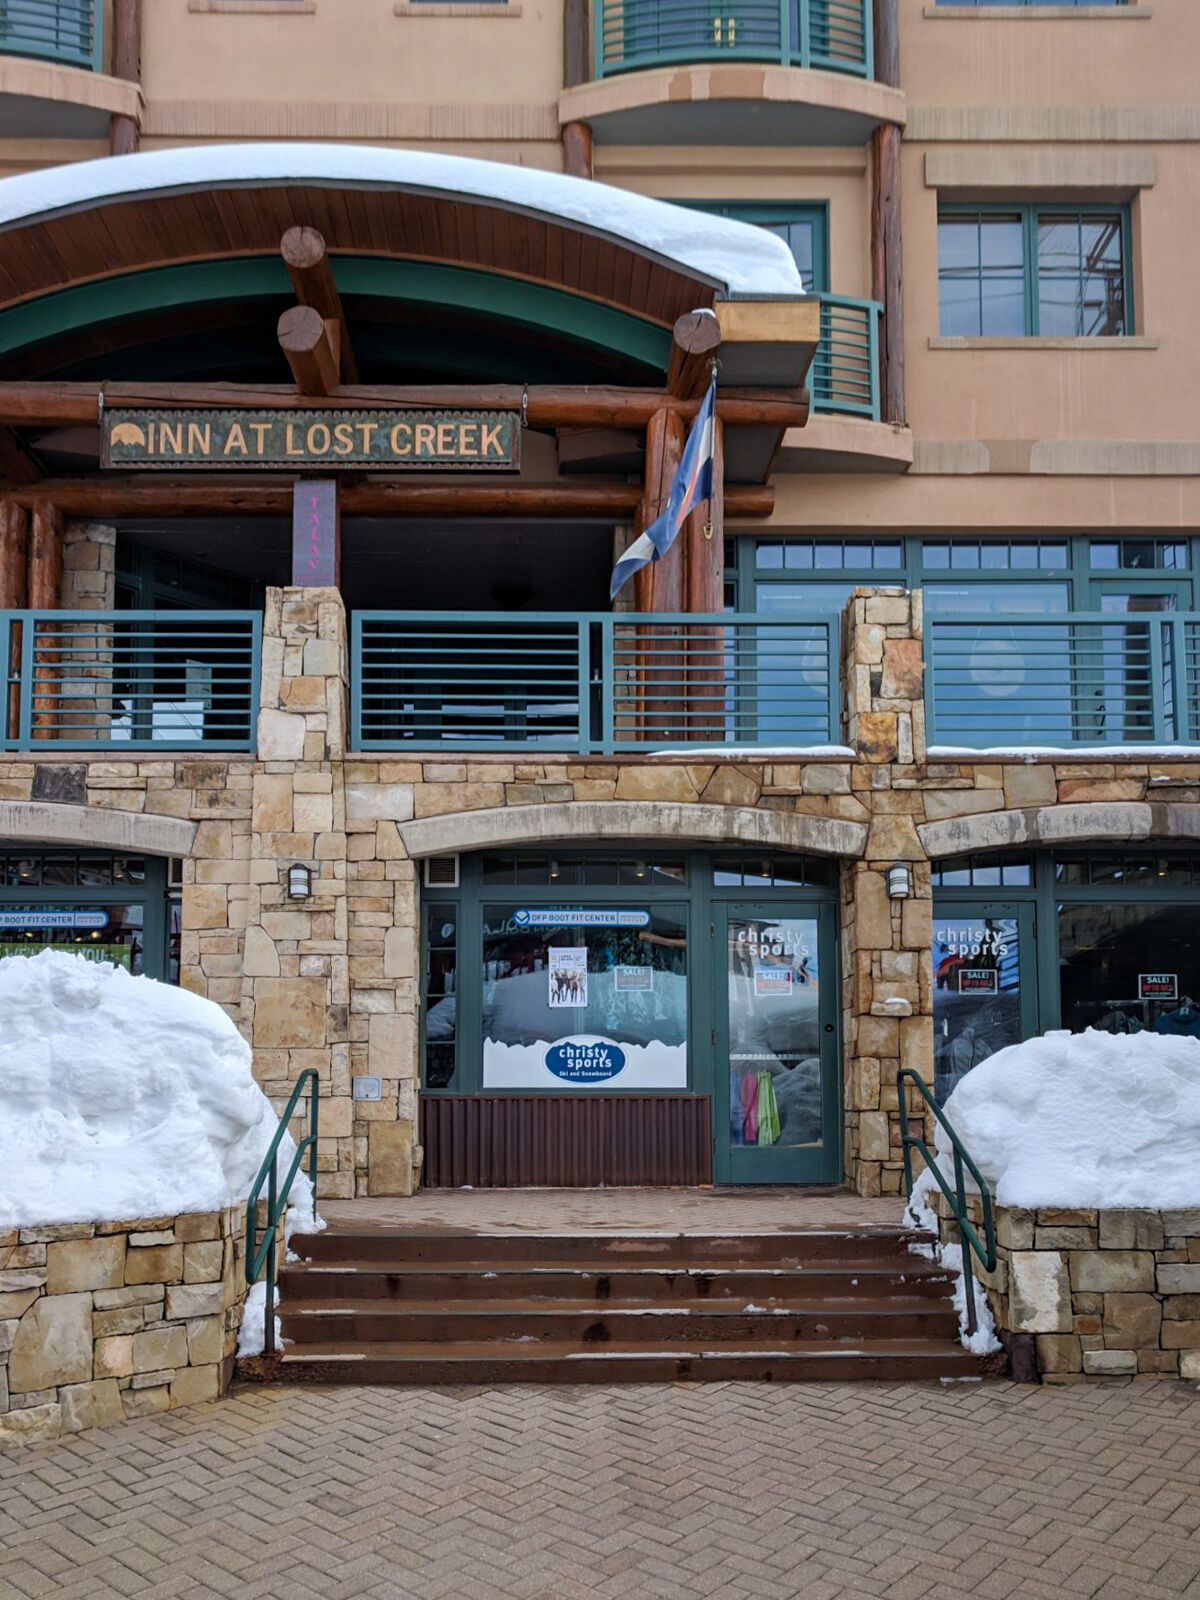 christy sports ski and snowboard rental in the telluride mountain village base area